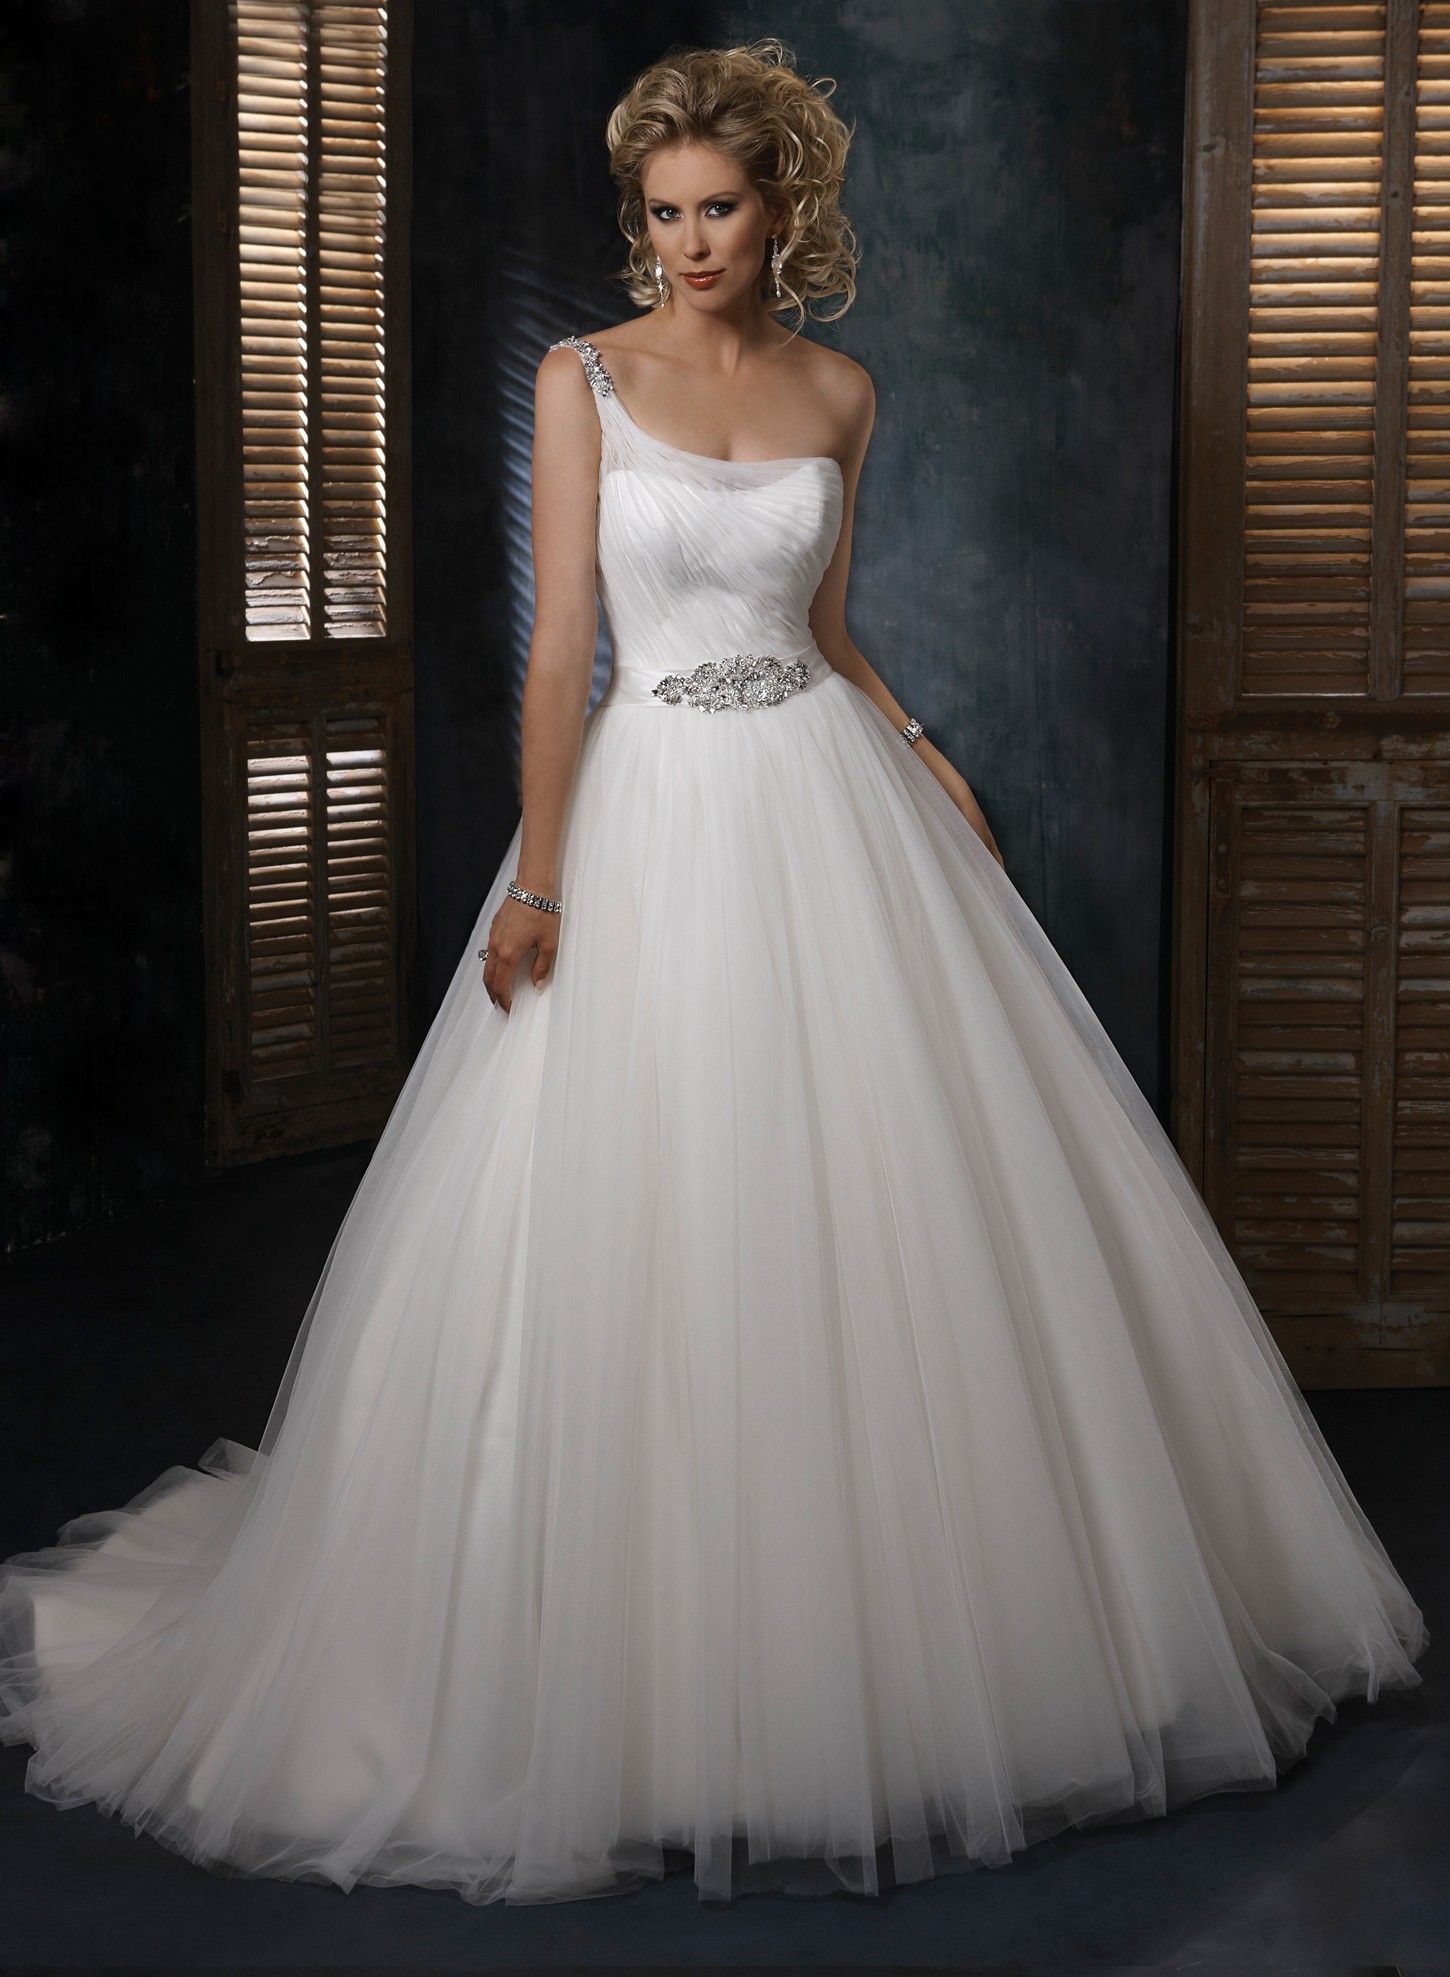 Fabulous Tulle and Organza One shoulder Neckline Ball Gown Wedding Dress